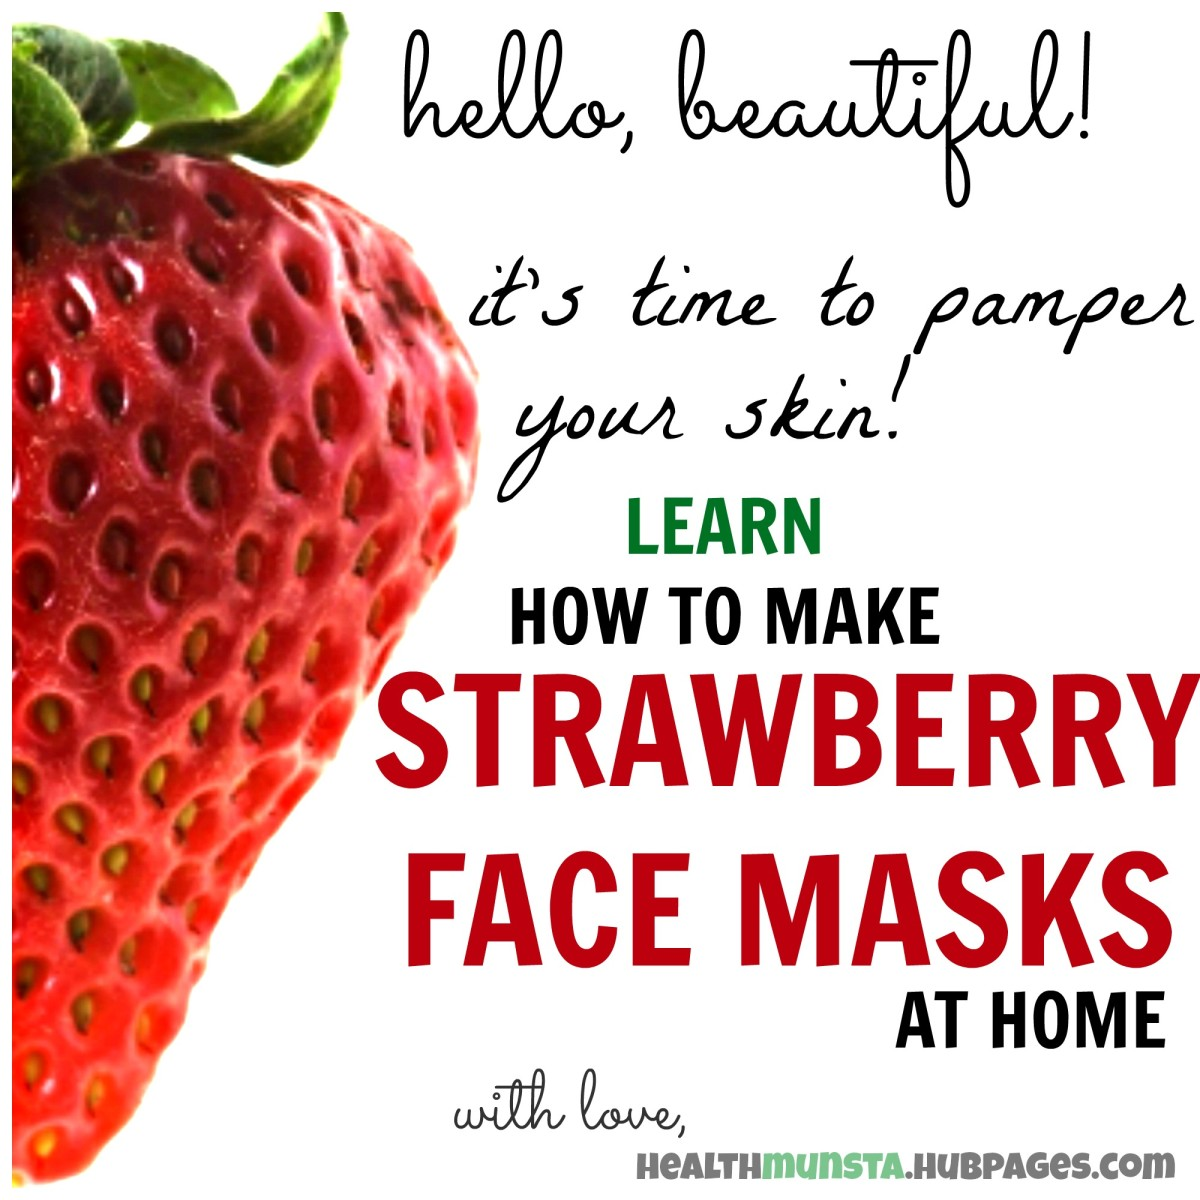 3 Easy Strawberry Face Mask Recipes To Make At Home